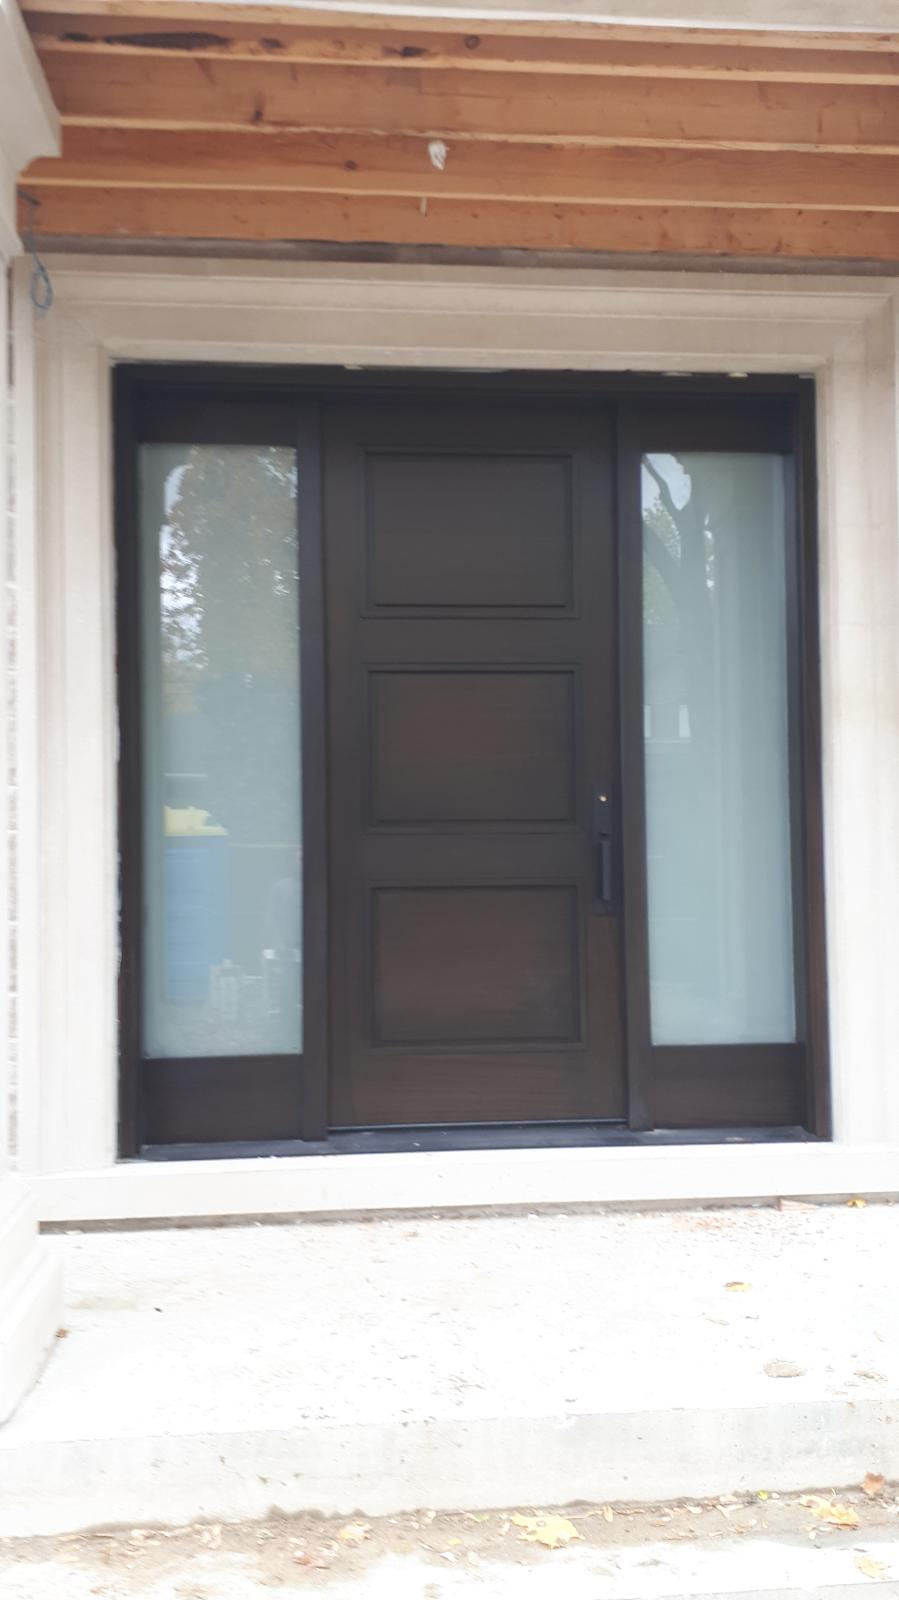 """Quality is never an accident, it is always the result of intelligent effort"" #SolidWood, #Doors, #Wood #Mahogany, #CustomMadeDoors, #EntryDoors.#DistinctiveLo­ok, #FityourHome Made by #NorthwoodDoorsInc. Your best value and quality, #HandCraftedDoors. Every door #Manifactured by us has our corporate stamp - a testament to our dedication and passion in #Woodwork. Let #NorthwoodDoorsInc. add to your home's #CurbAppeal by enhancing the quality and beauty of your #EntryDoors. Visit our #Showroom to envision how one of our many #doors on display might look like at your #Home. Contact us today Tel. 416-253-2034, info@northwooddoors.com, www.northwooddoor.com — in Toronto, Ontario"